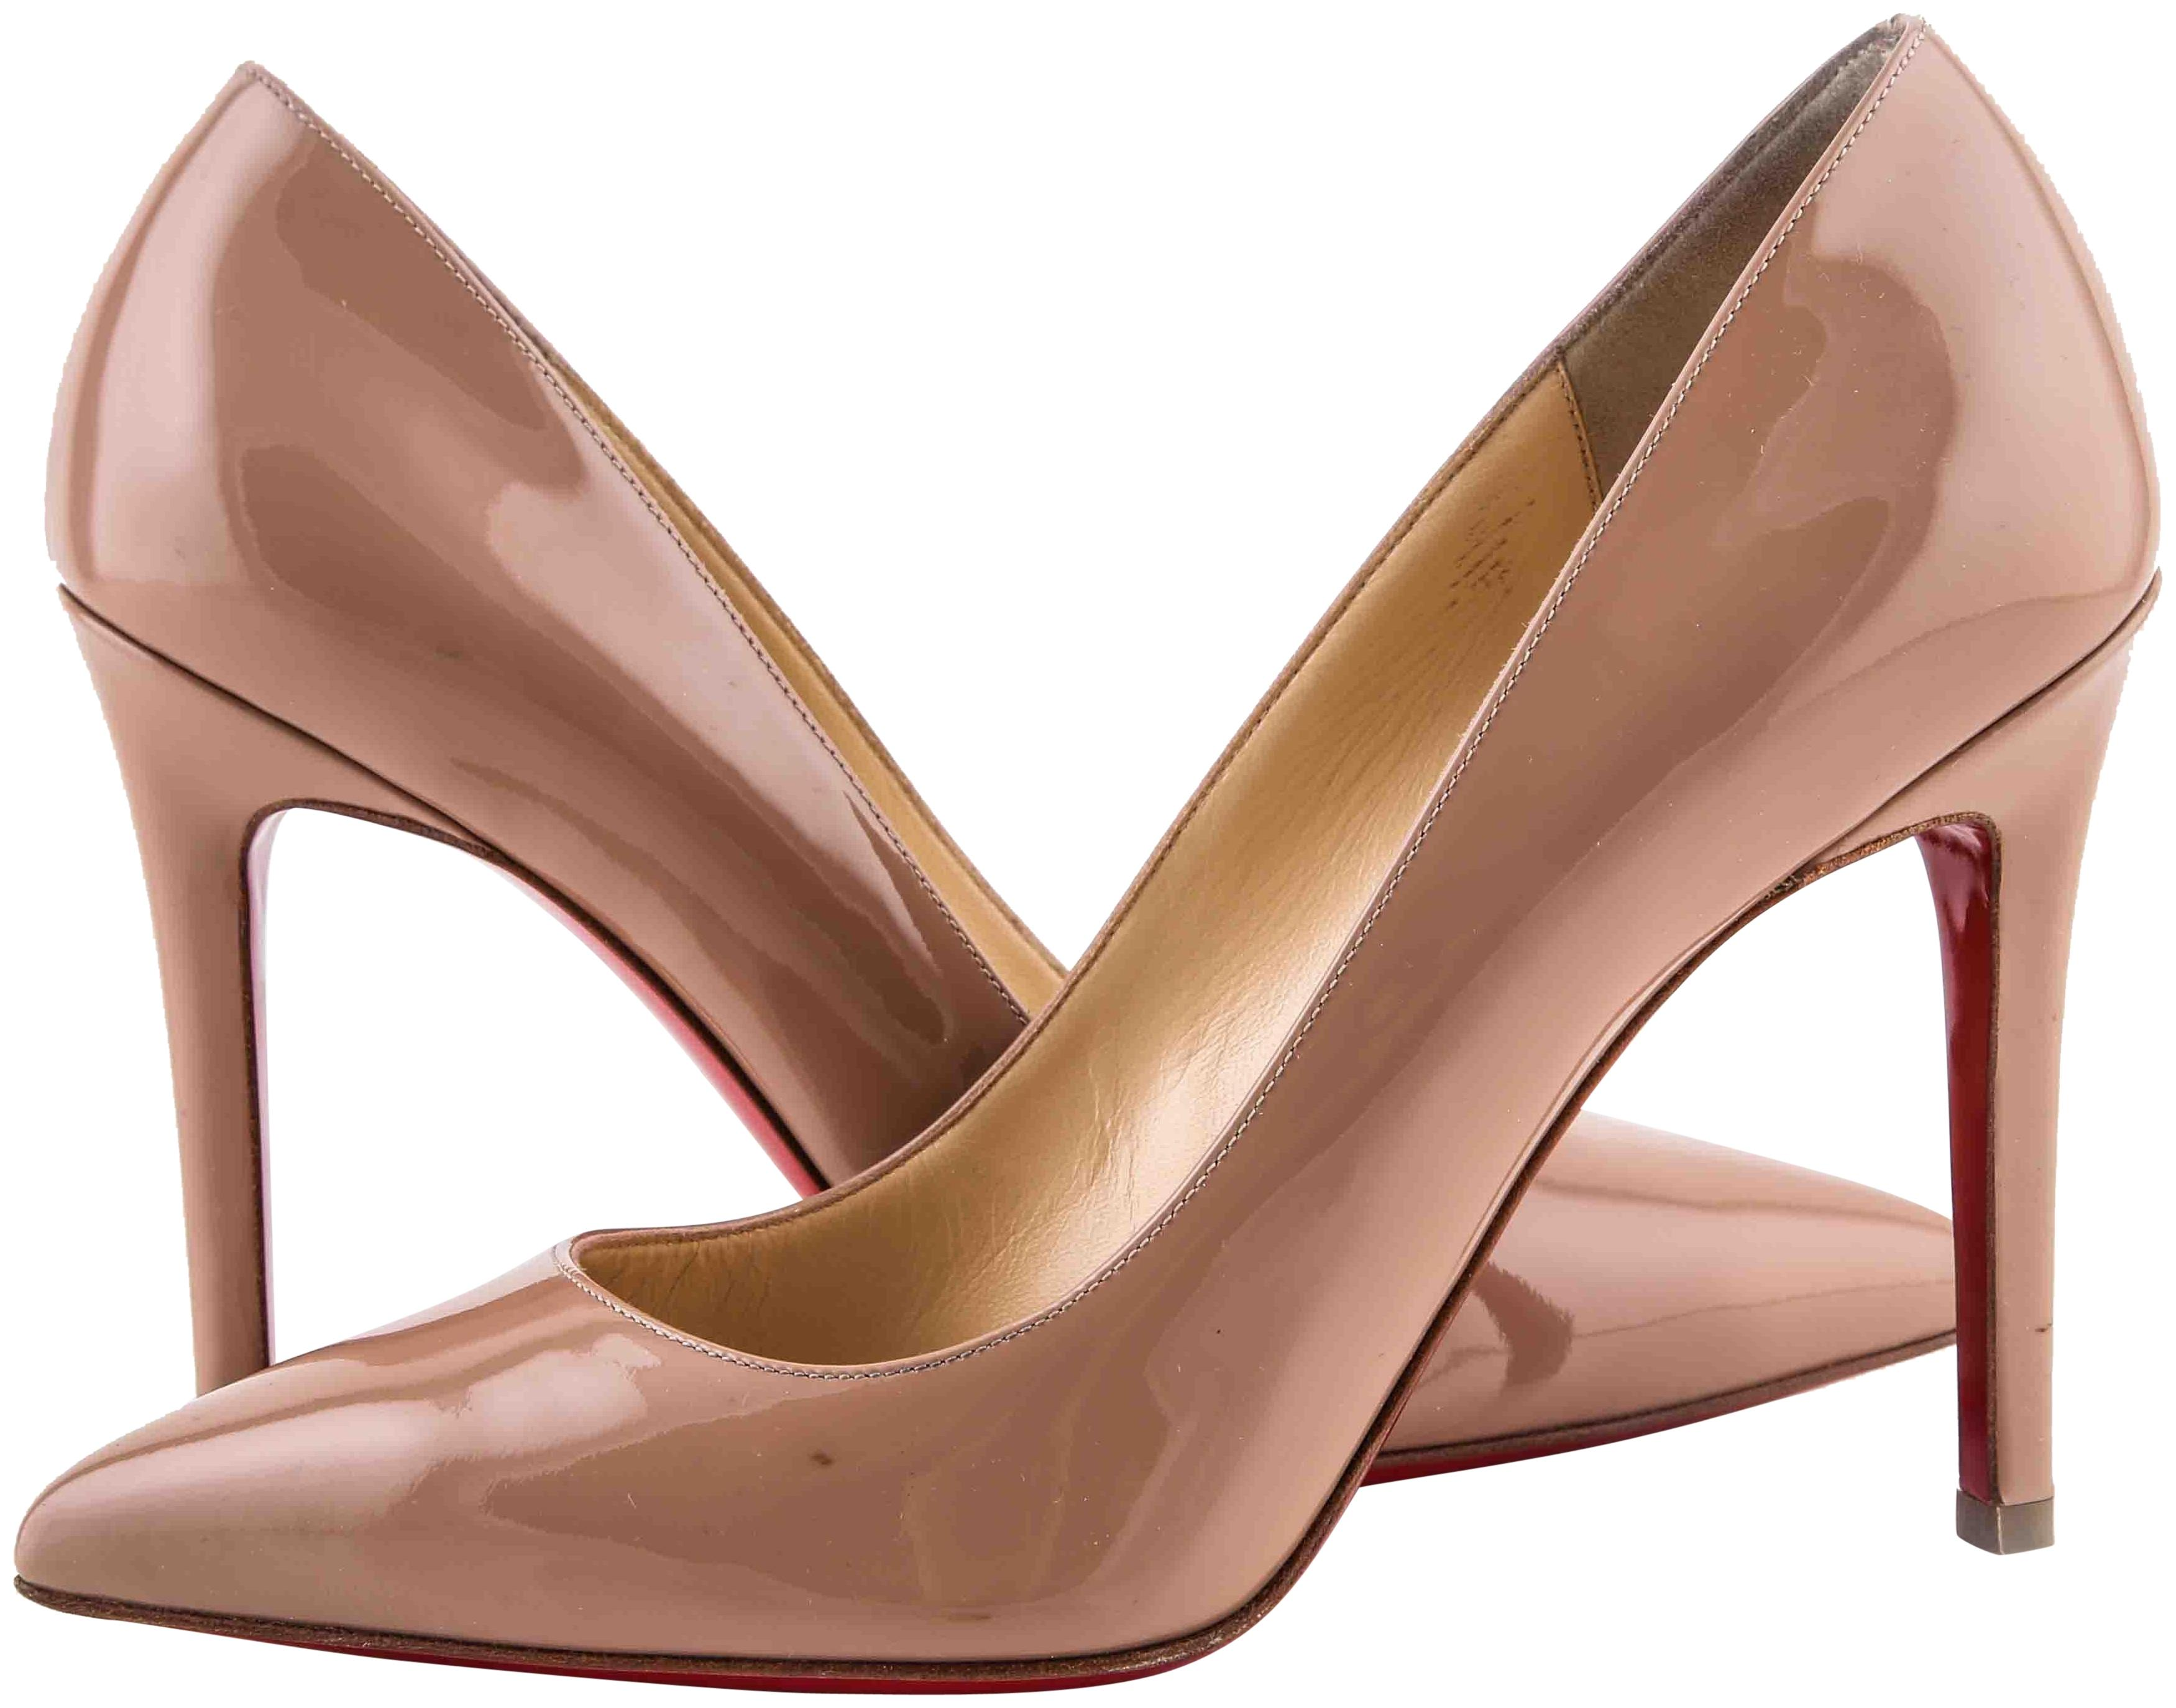 Christian Louboutin * Nude Pigalle / Classic Pumps Size US 7 Regular (M, B)